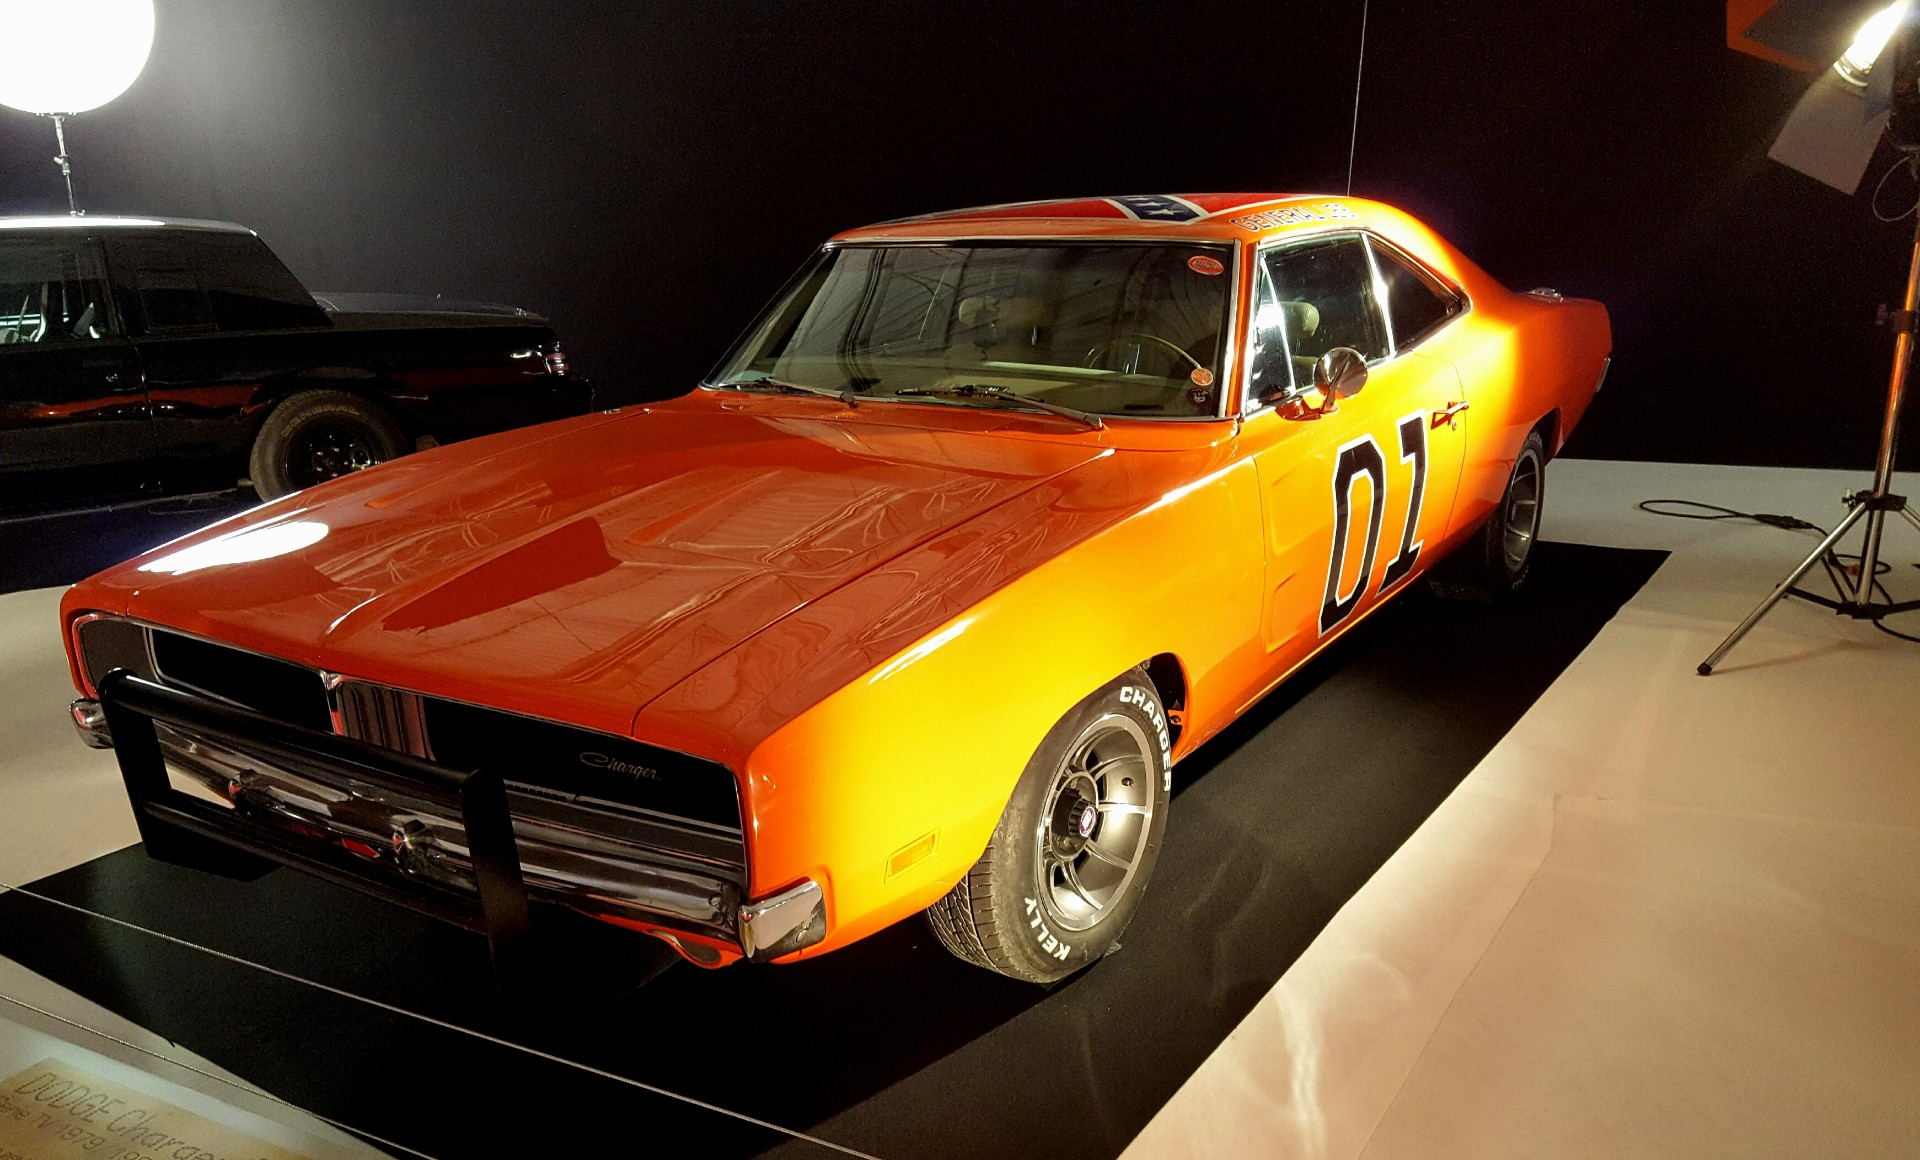 dodge charger rt general lee 1969 sherif fais moi peur en voiture carine. Black Bedroom Furniture Sets. Home Design Ideas